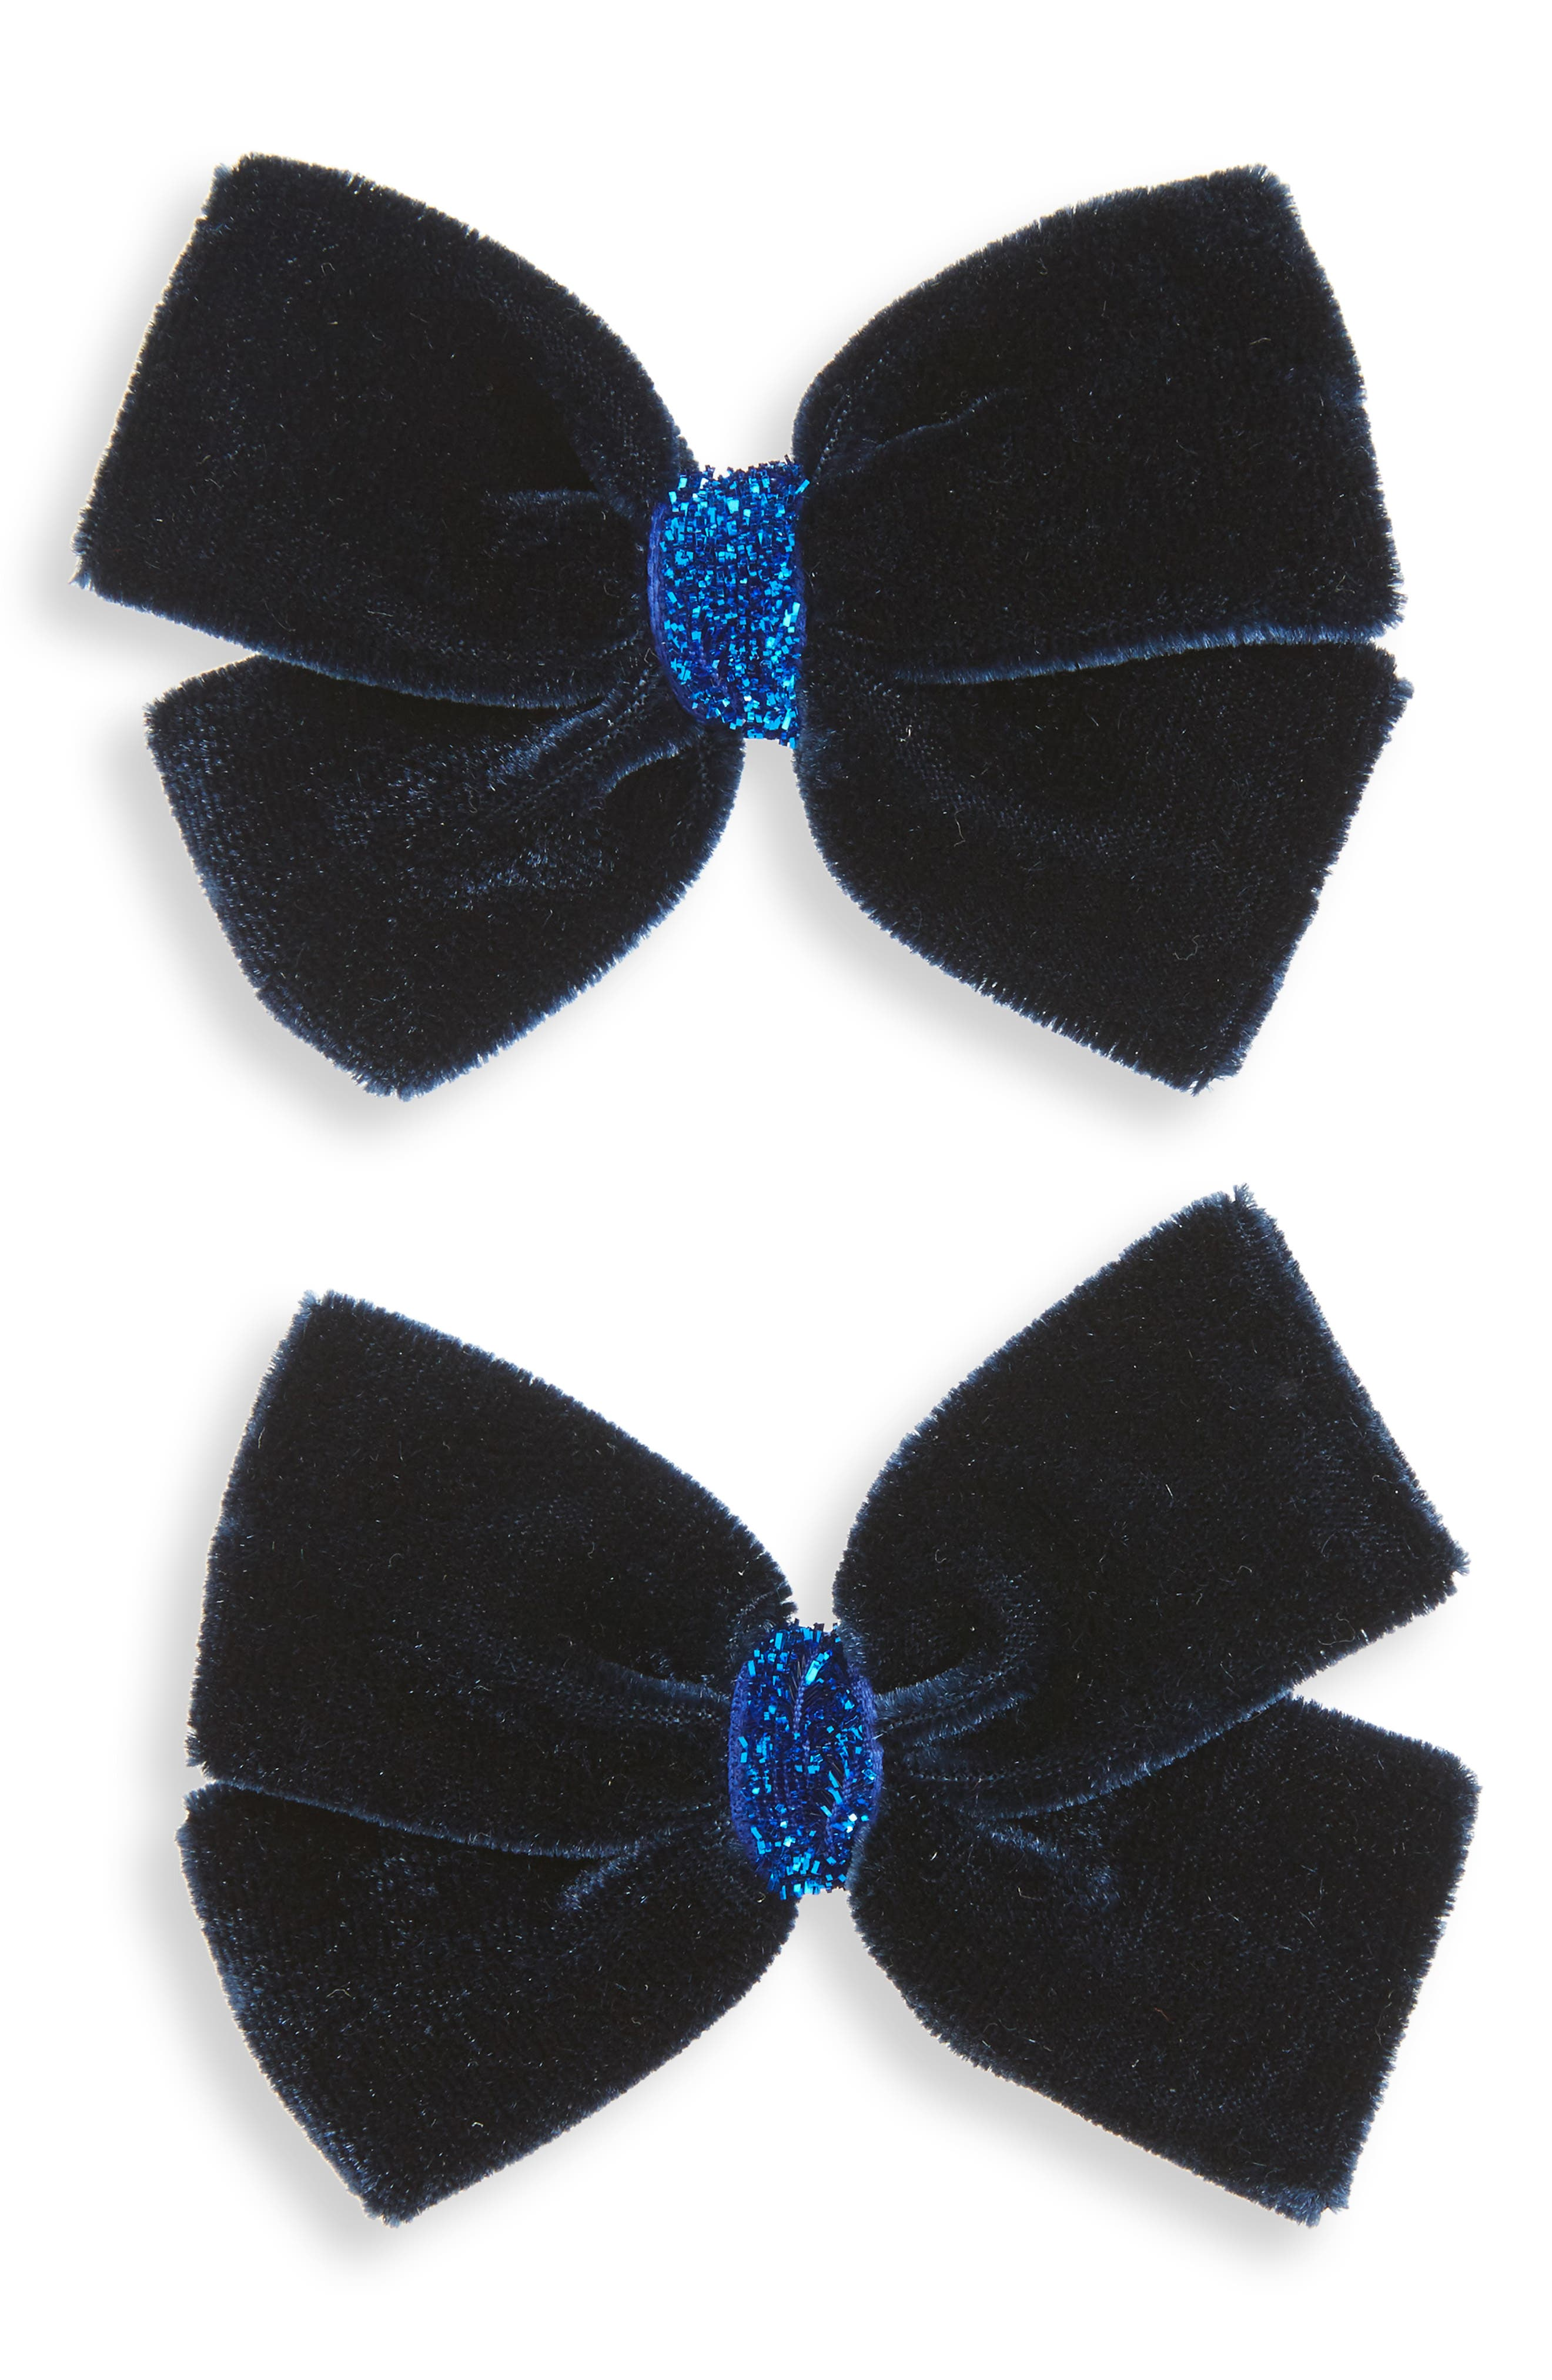 Alternate Image 1 Selected - PLH Bows & Laces 2-Pack Velvet Bow Clips (Baby Girls)